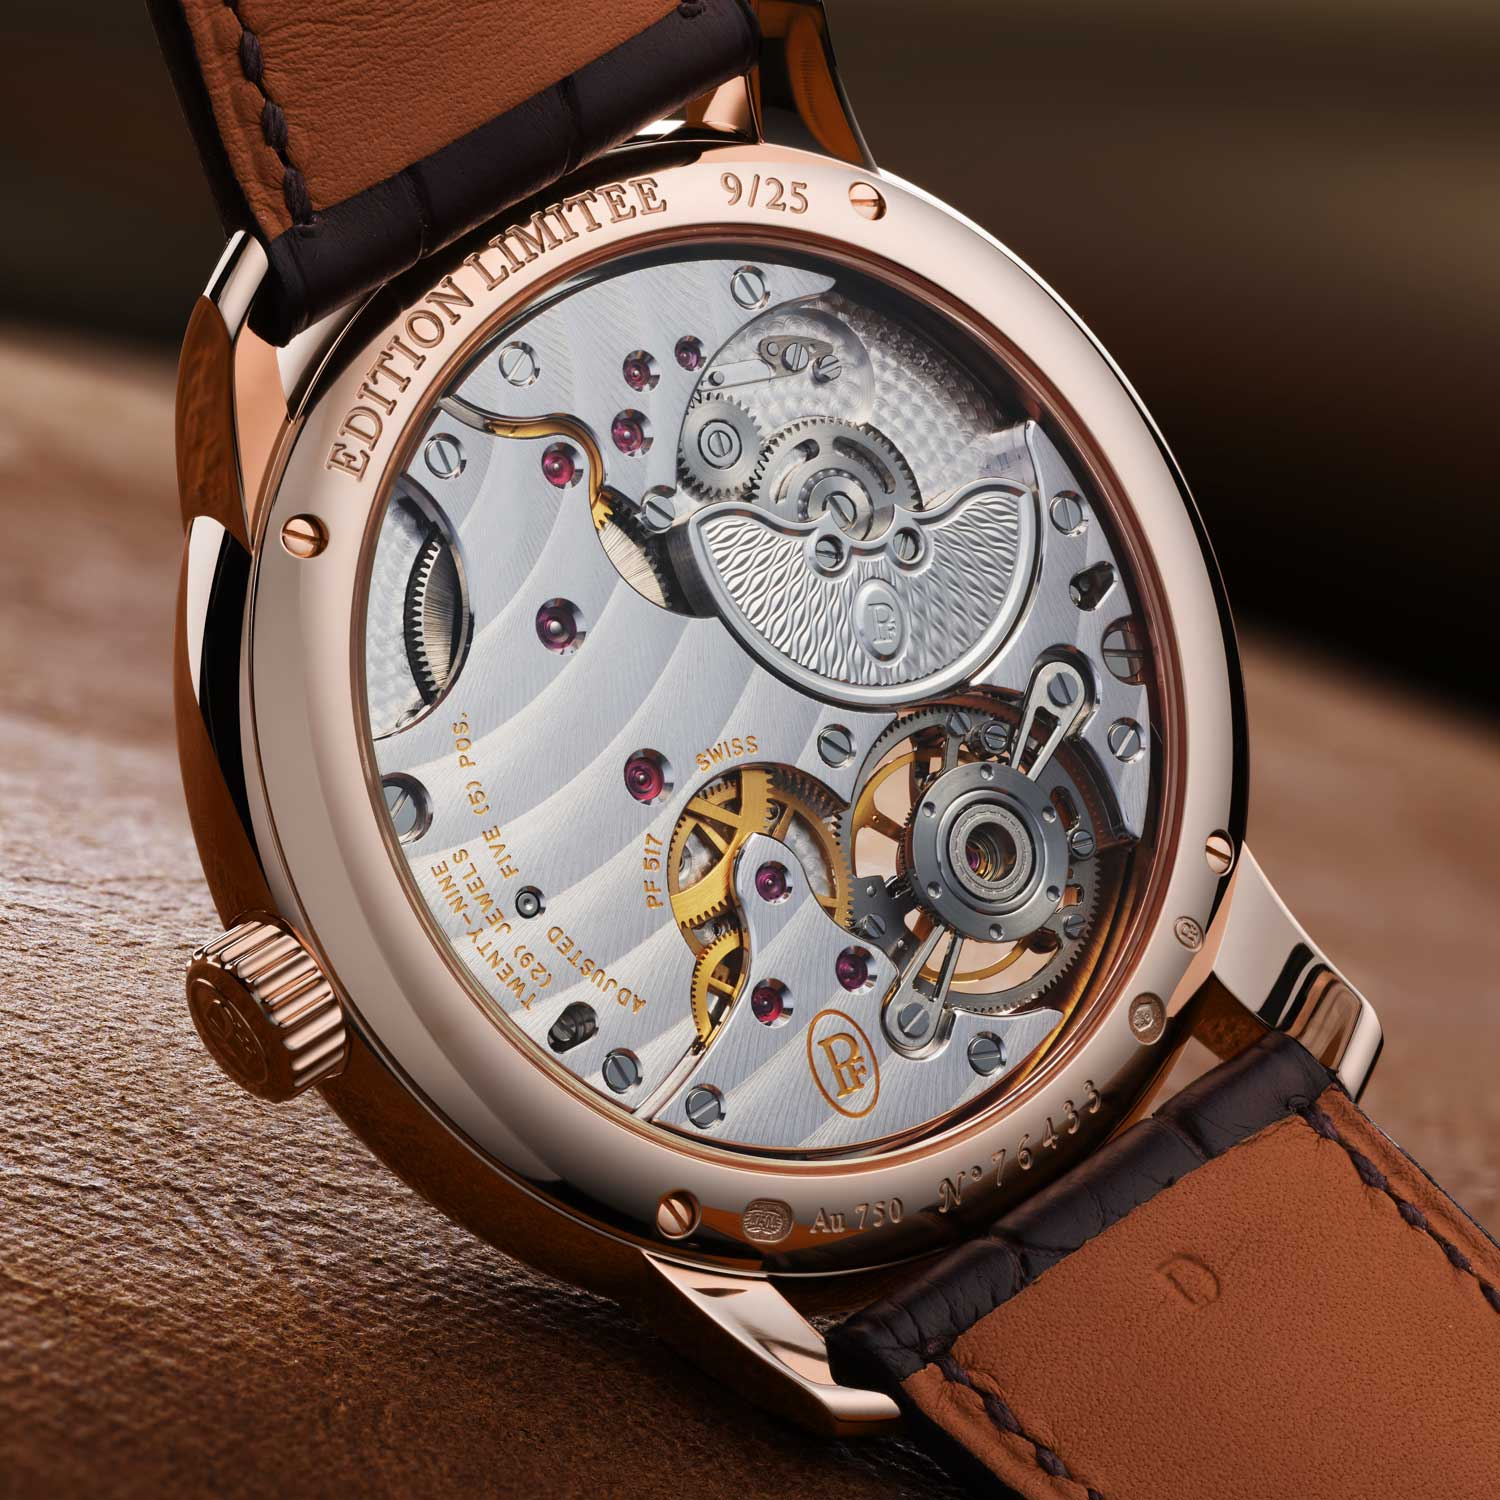 The tourbillon of the PF715 caliber, featured up close on the main plate of the movement